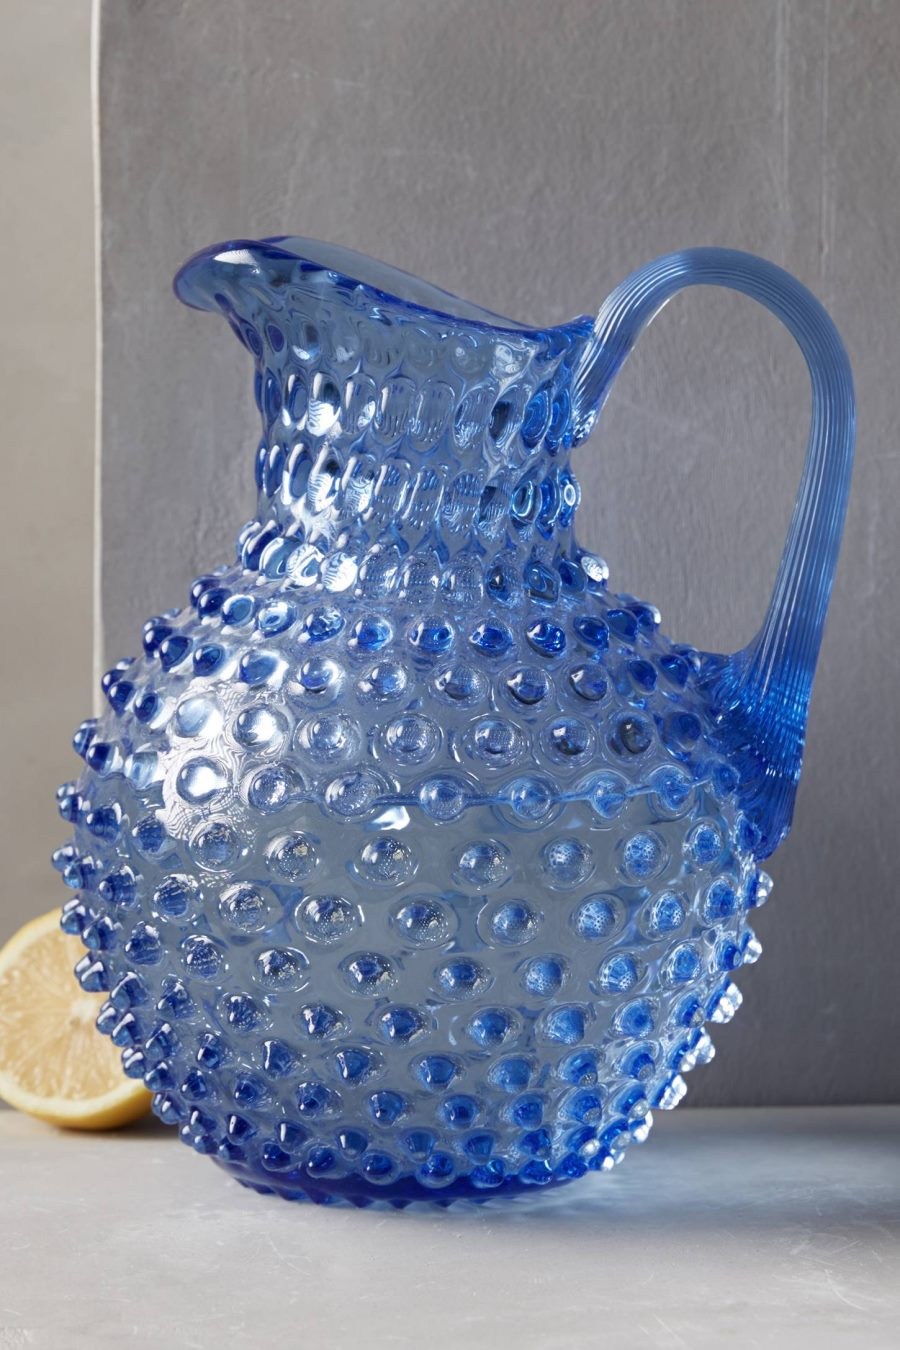 Blue hobnail pitcher from Anthropologie